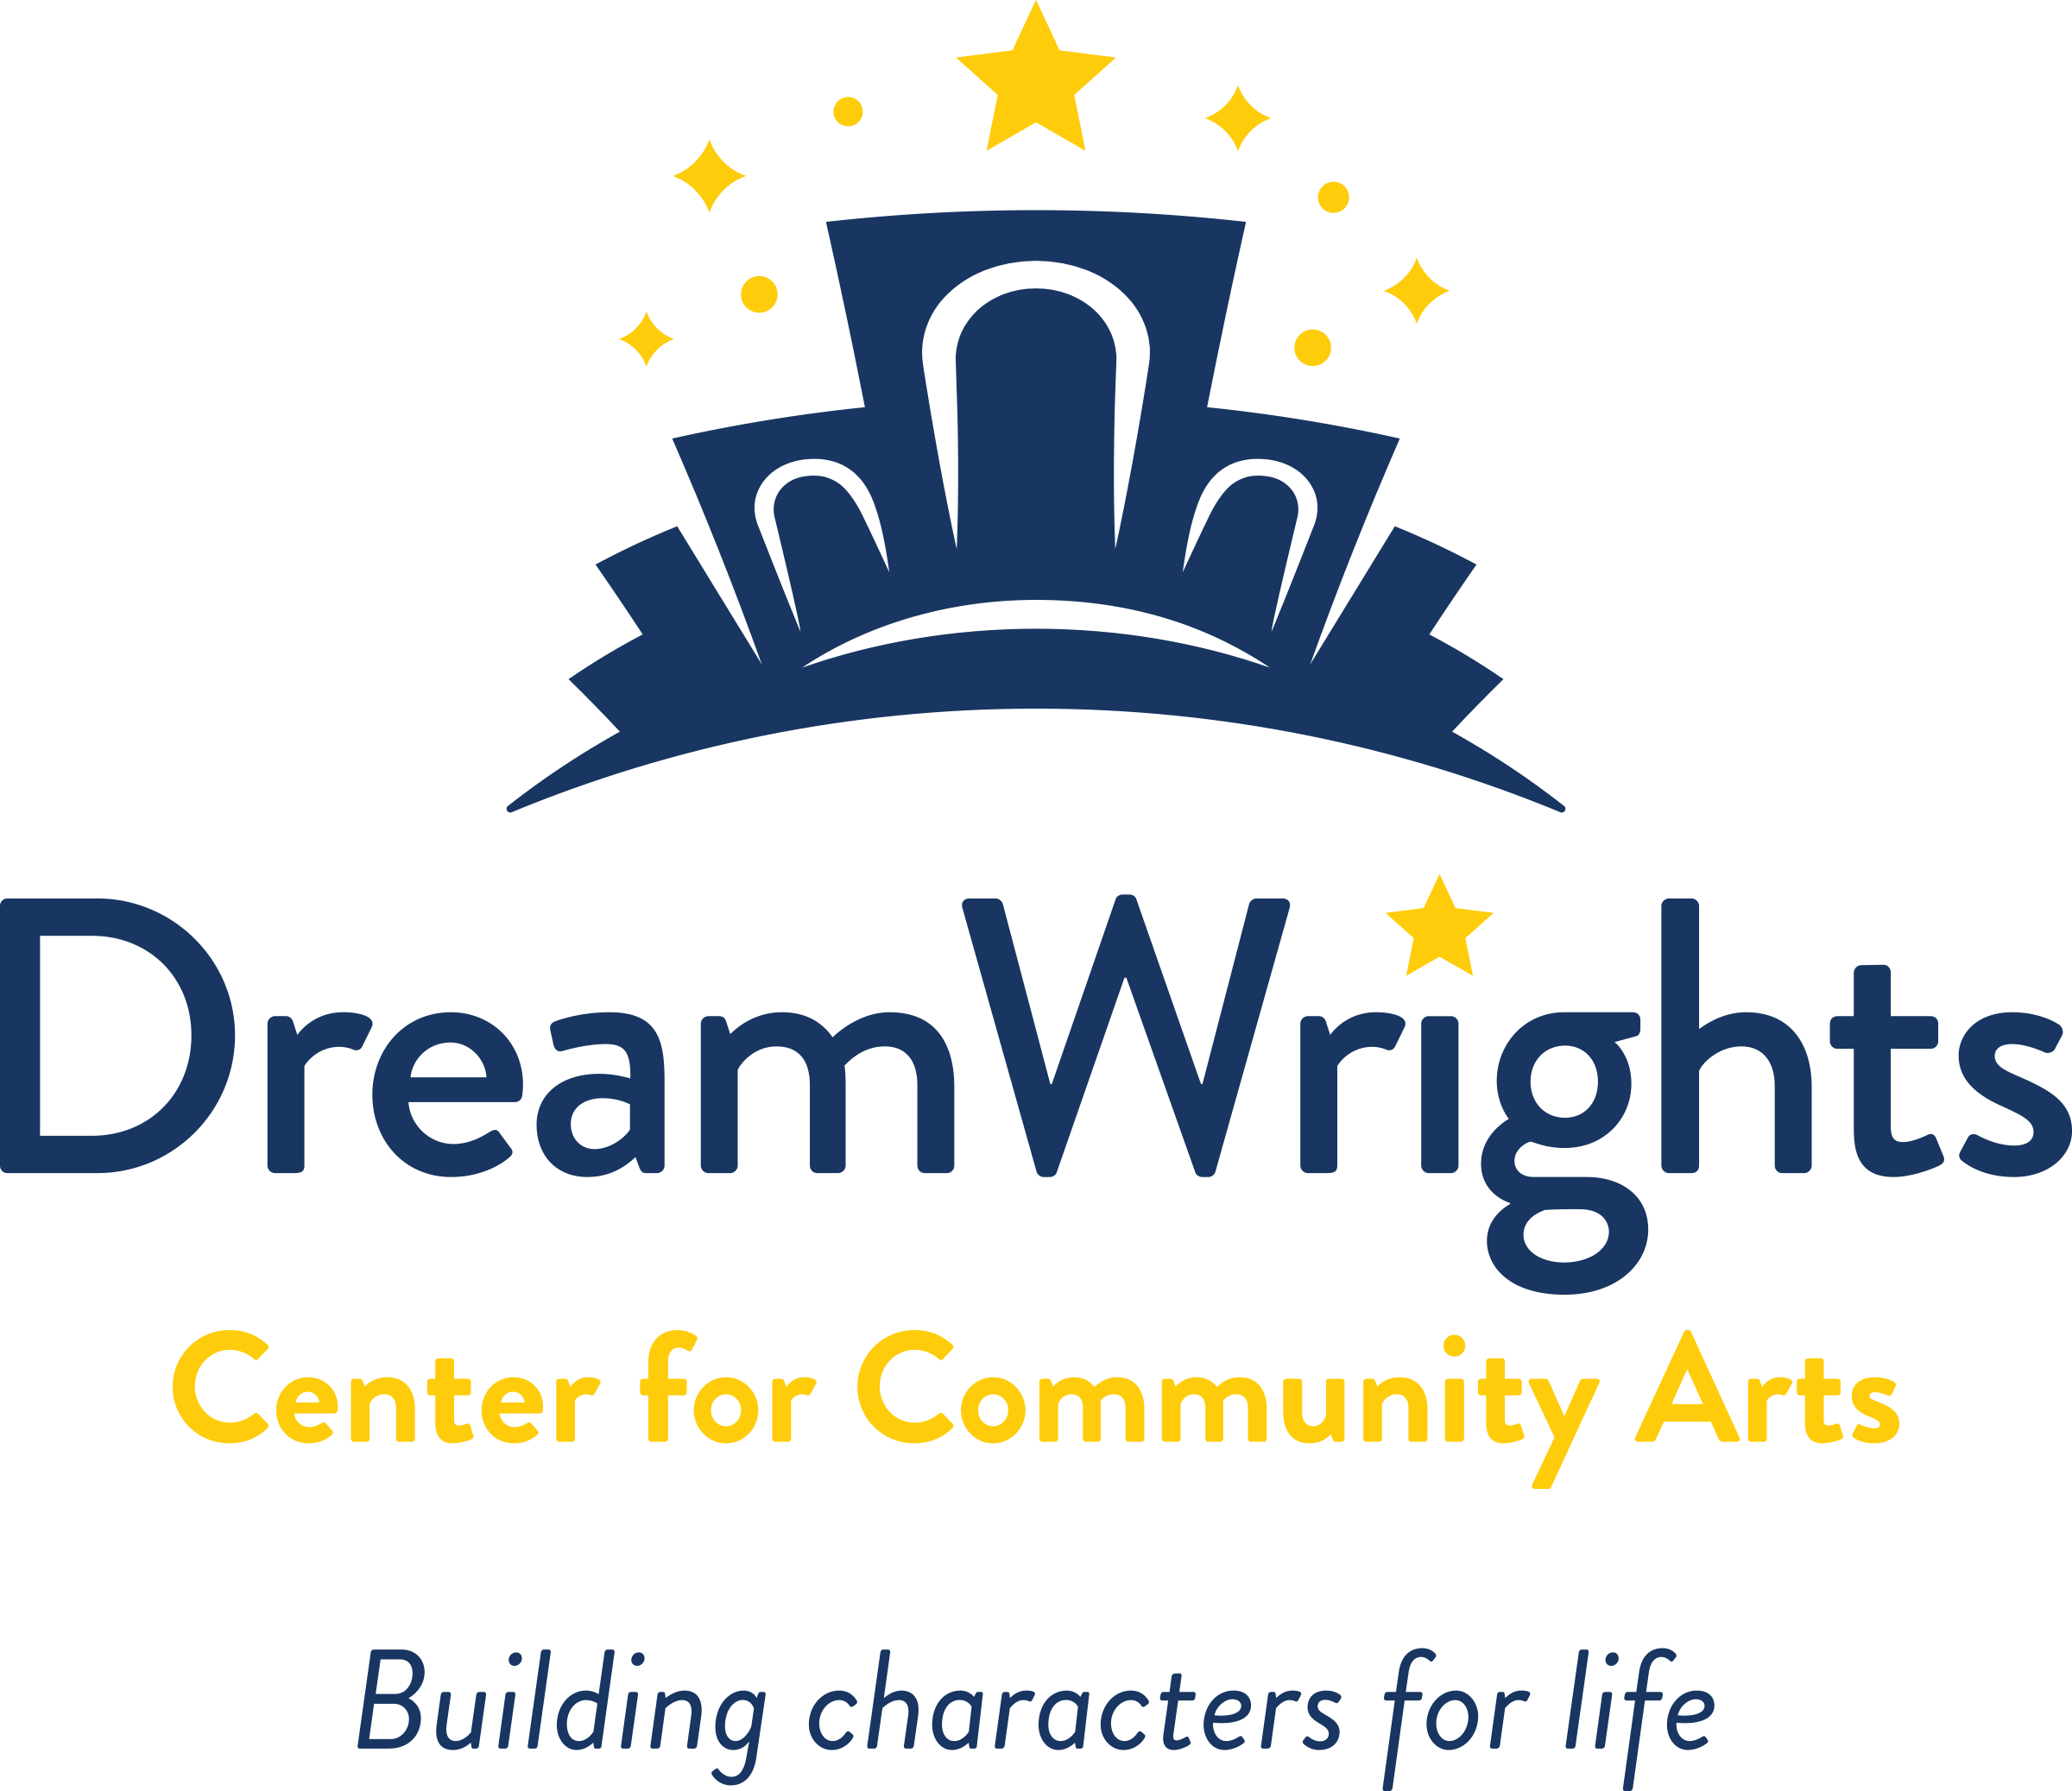 DreamWrights